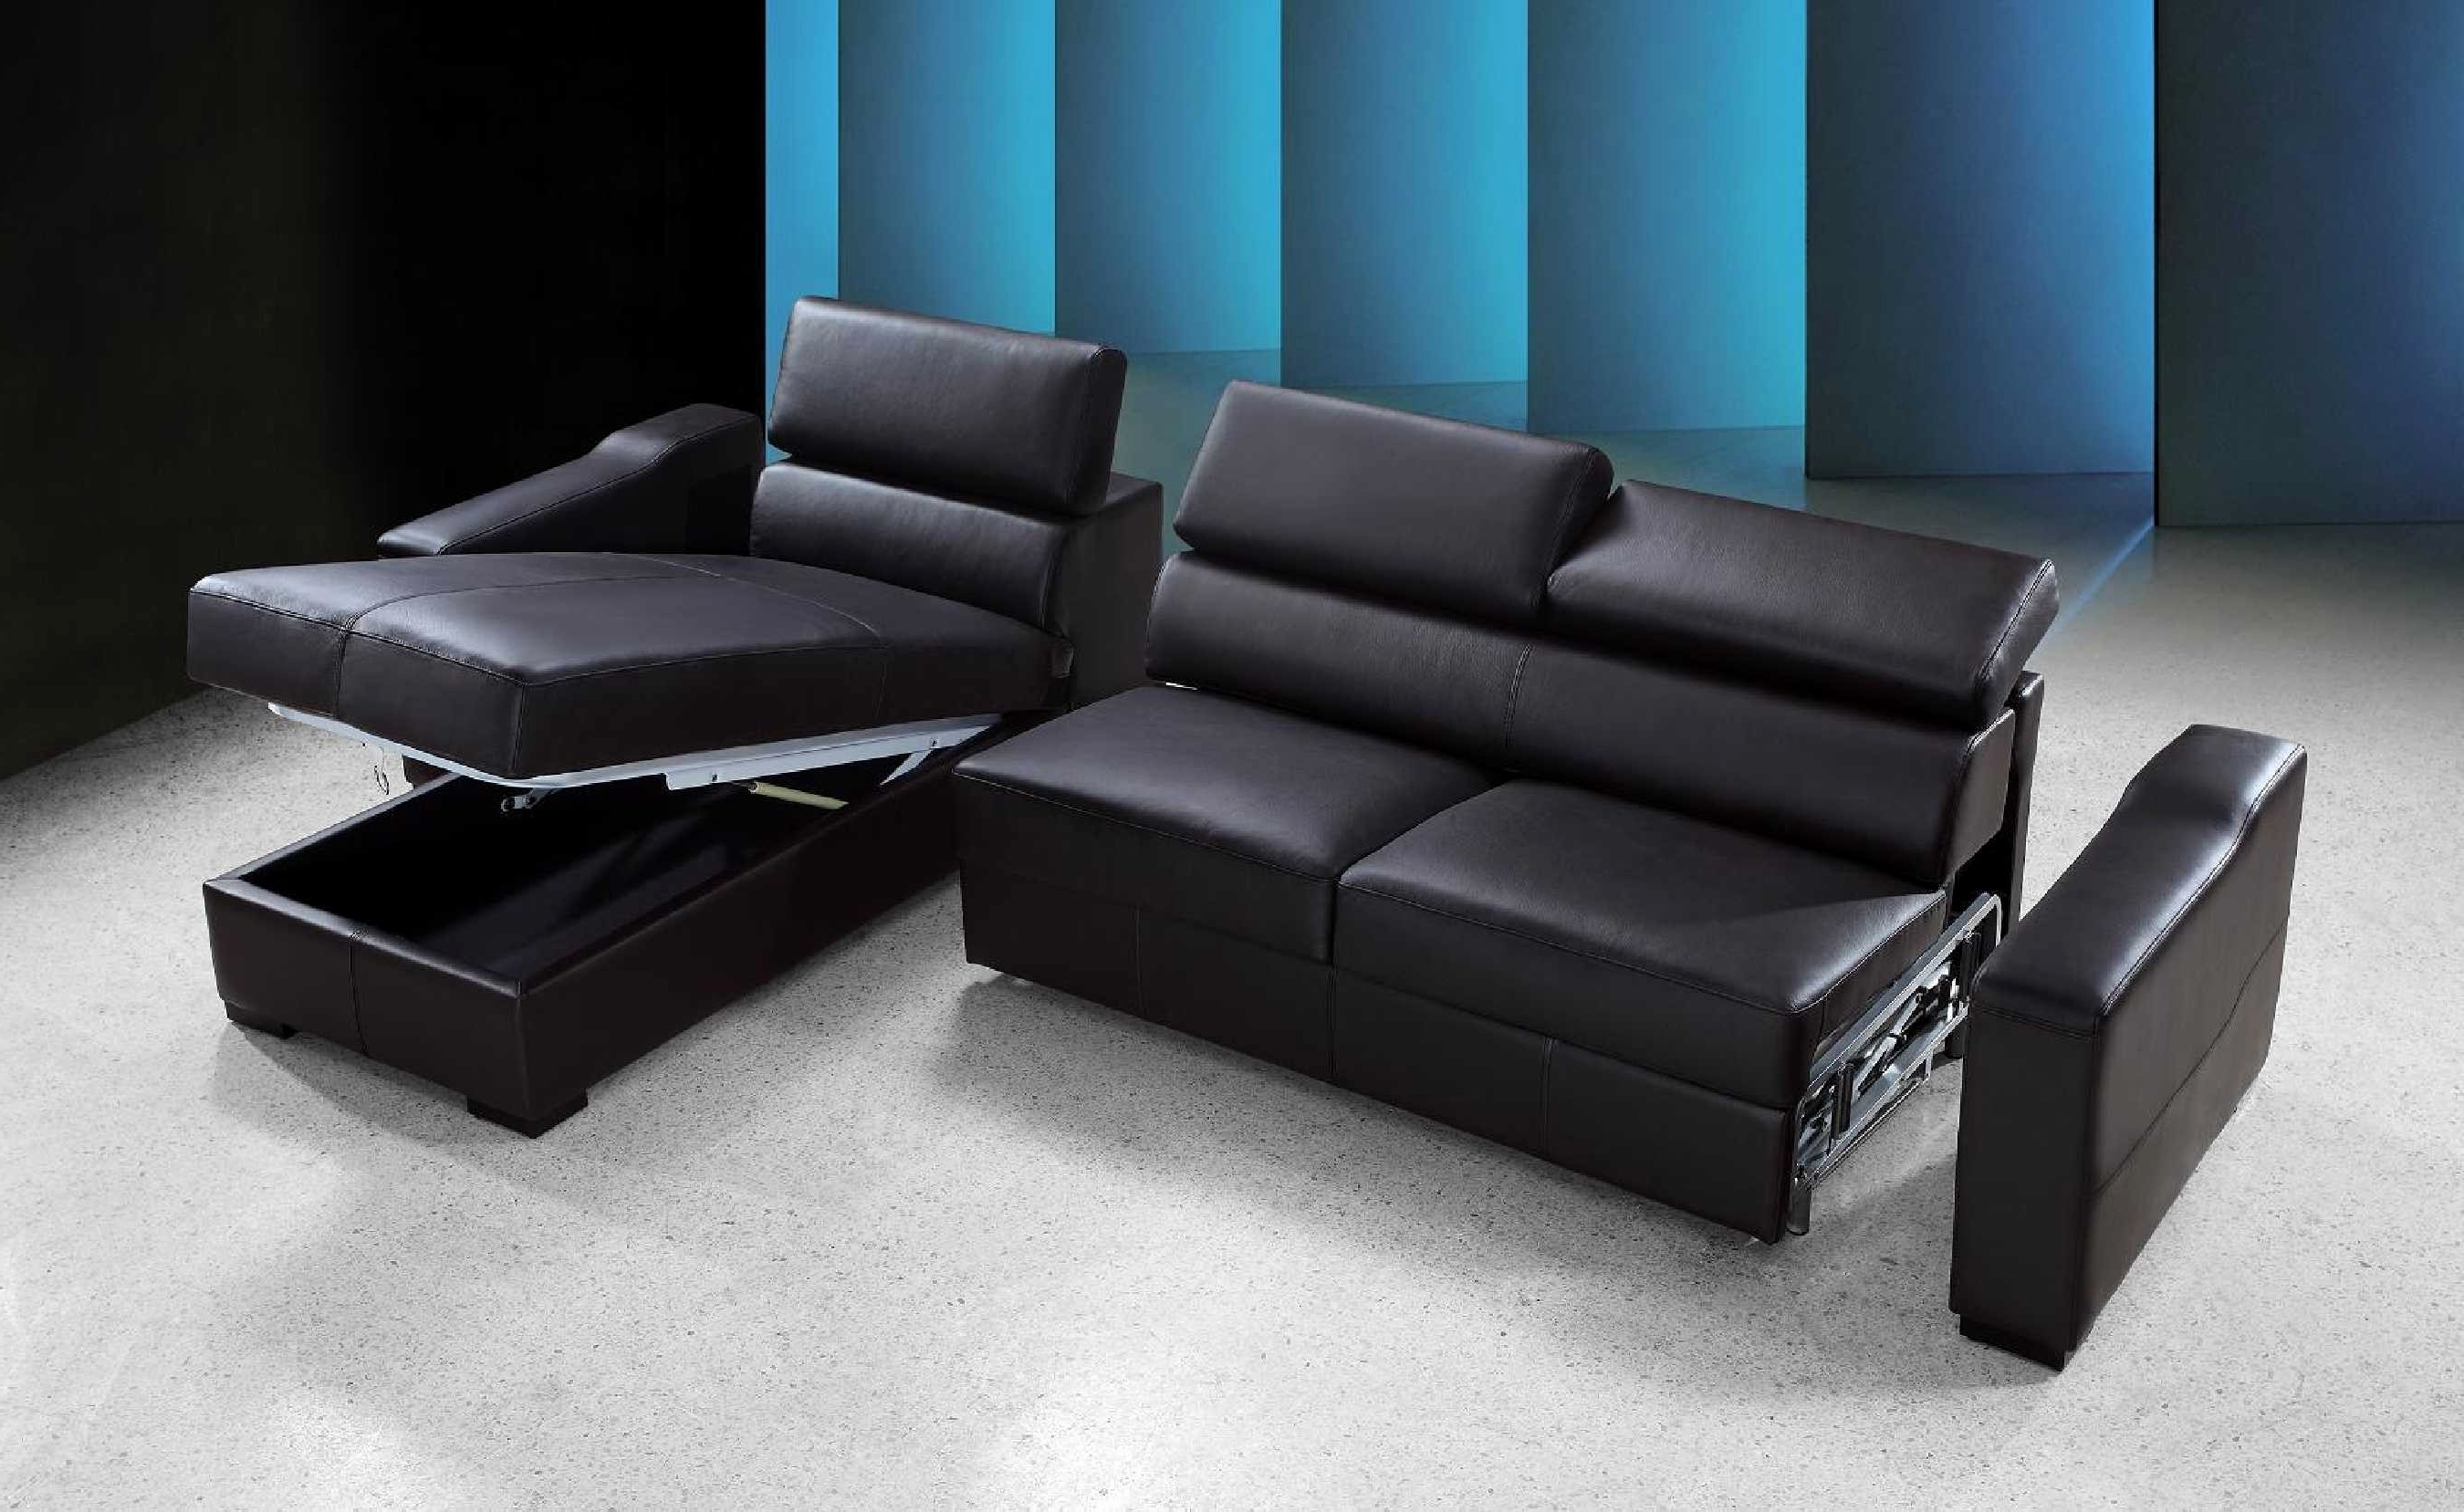 Sofas : Sofa Deals Broyhill Sofa Recliner Sofa Blue Leather Sofa L Intended For Popular Leather Sofas With Storage (View 14 of 15)